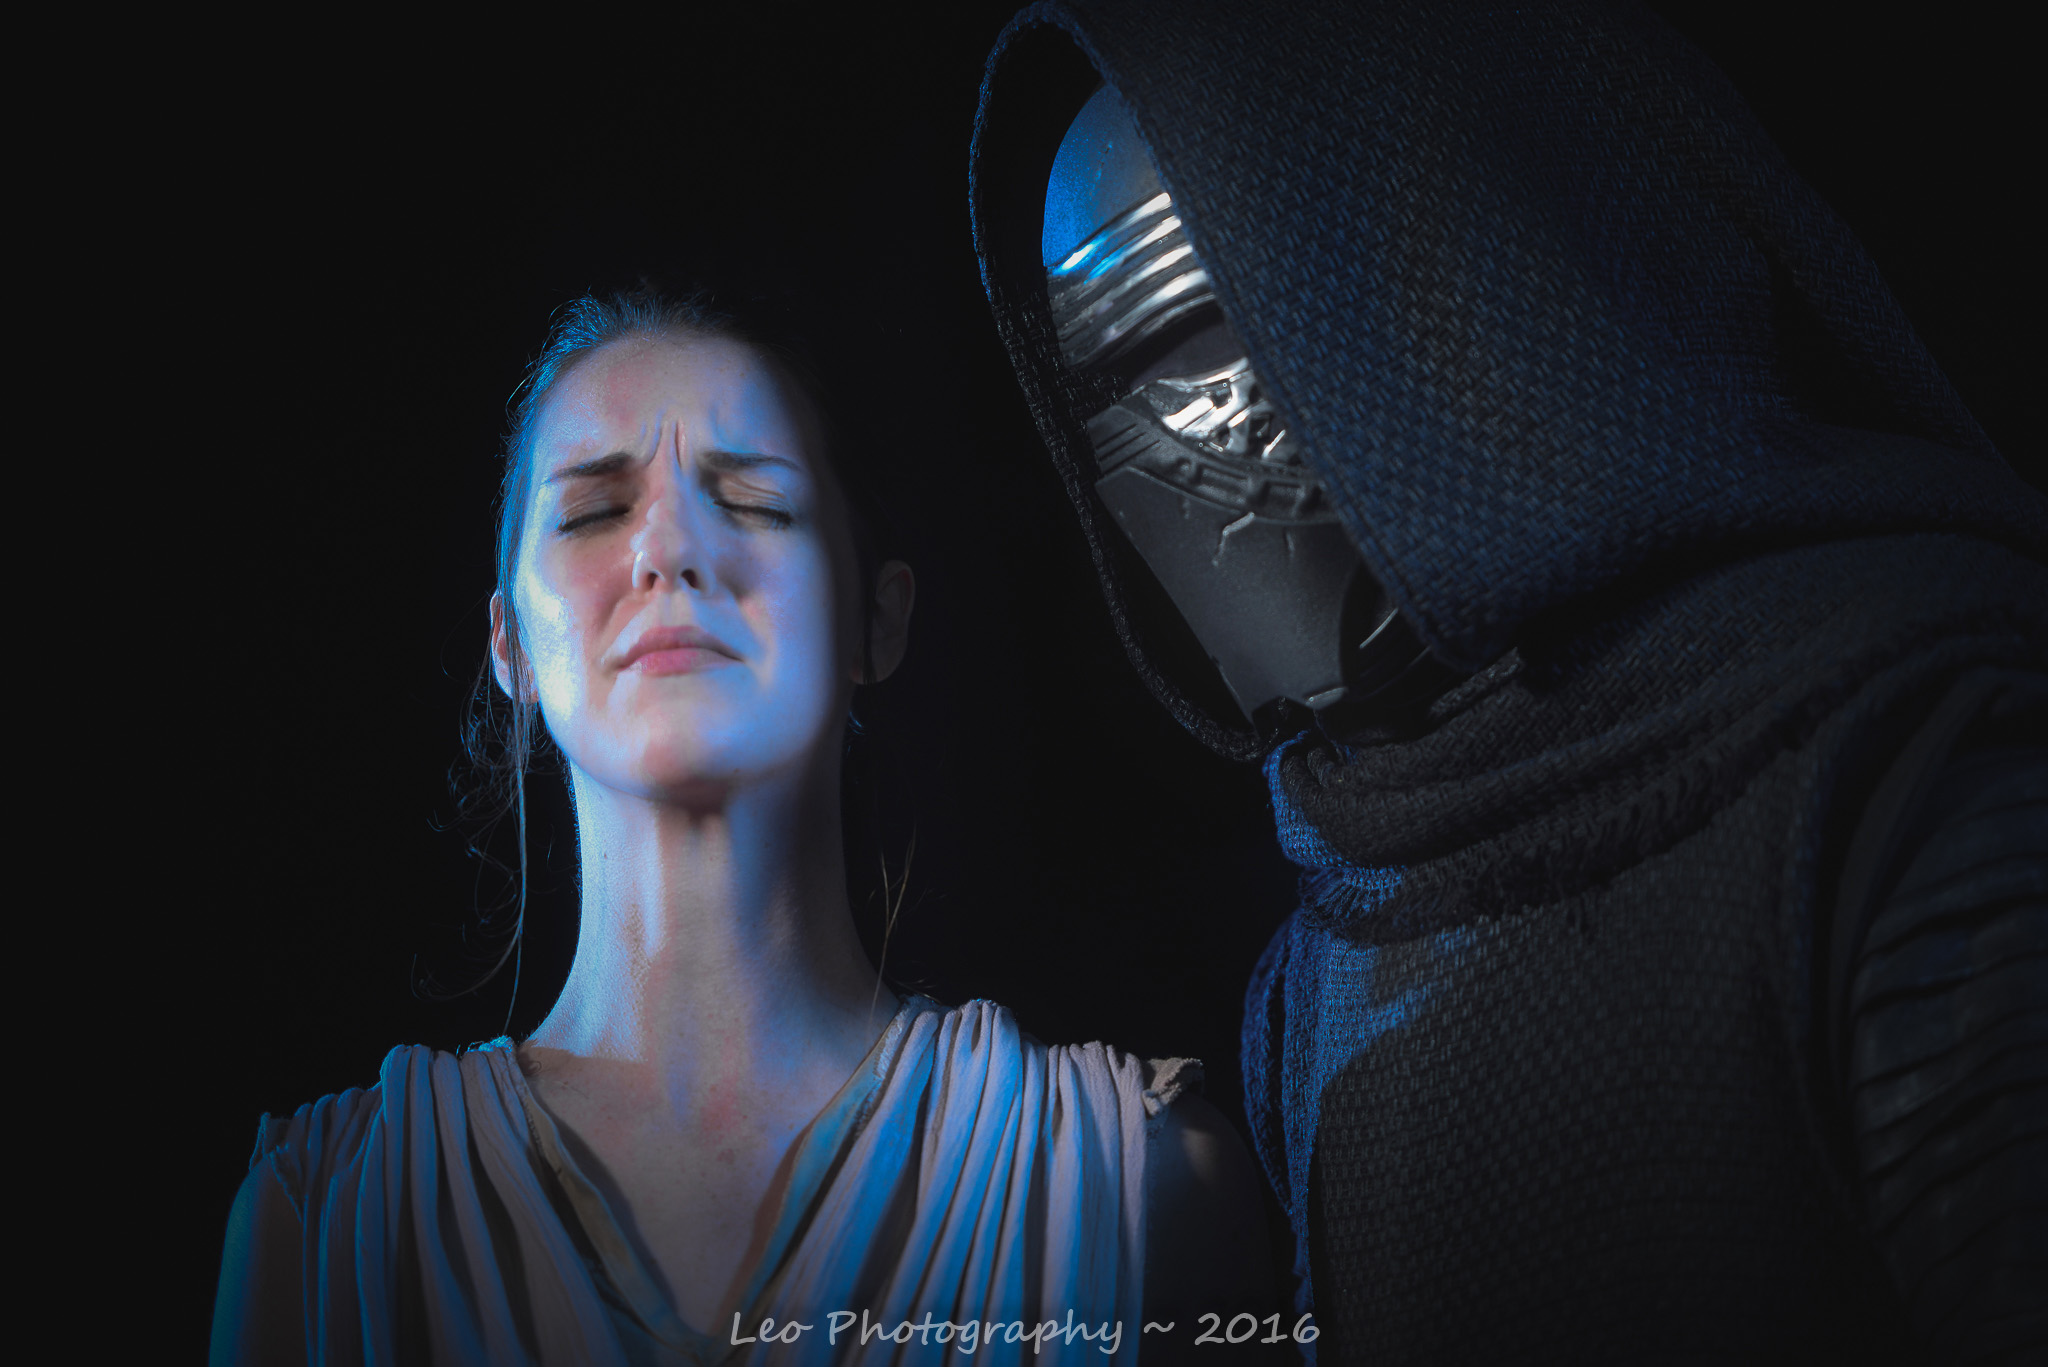 Show my the ways of the force. Kylo Ren by Jeremy Berry. Rey by The Lady Nerd. Picture by David Leo Photography.